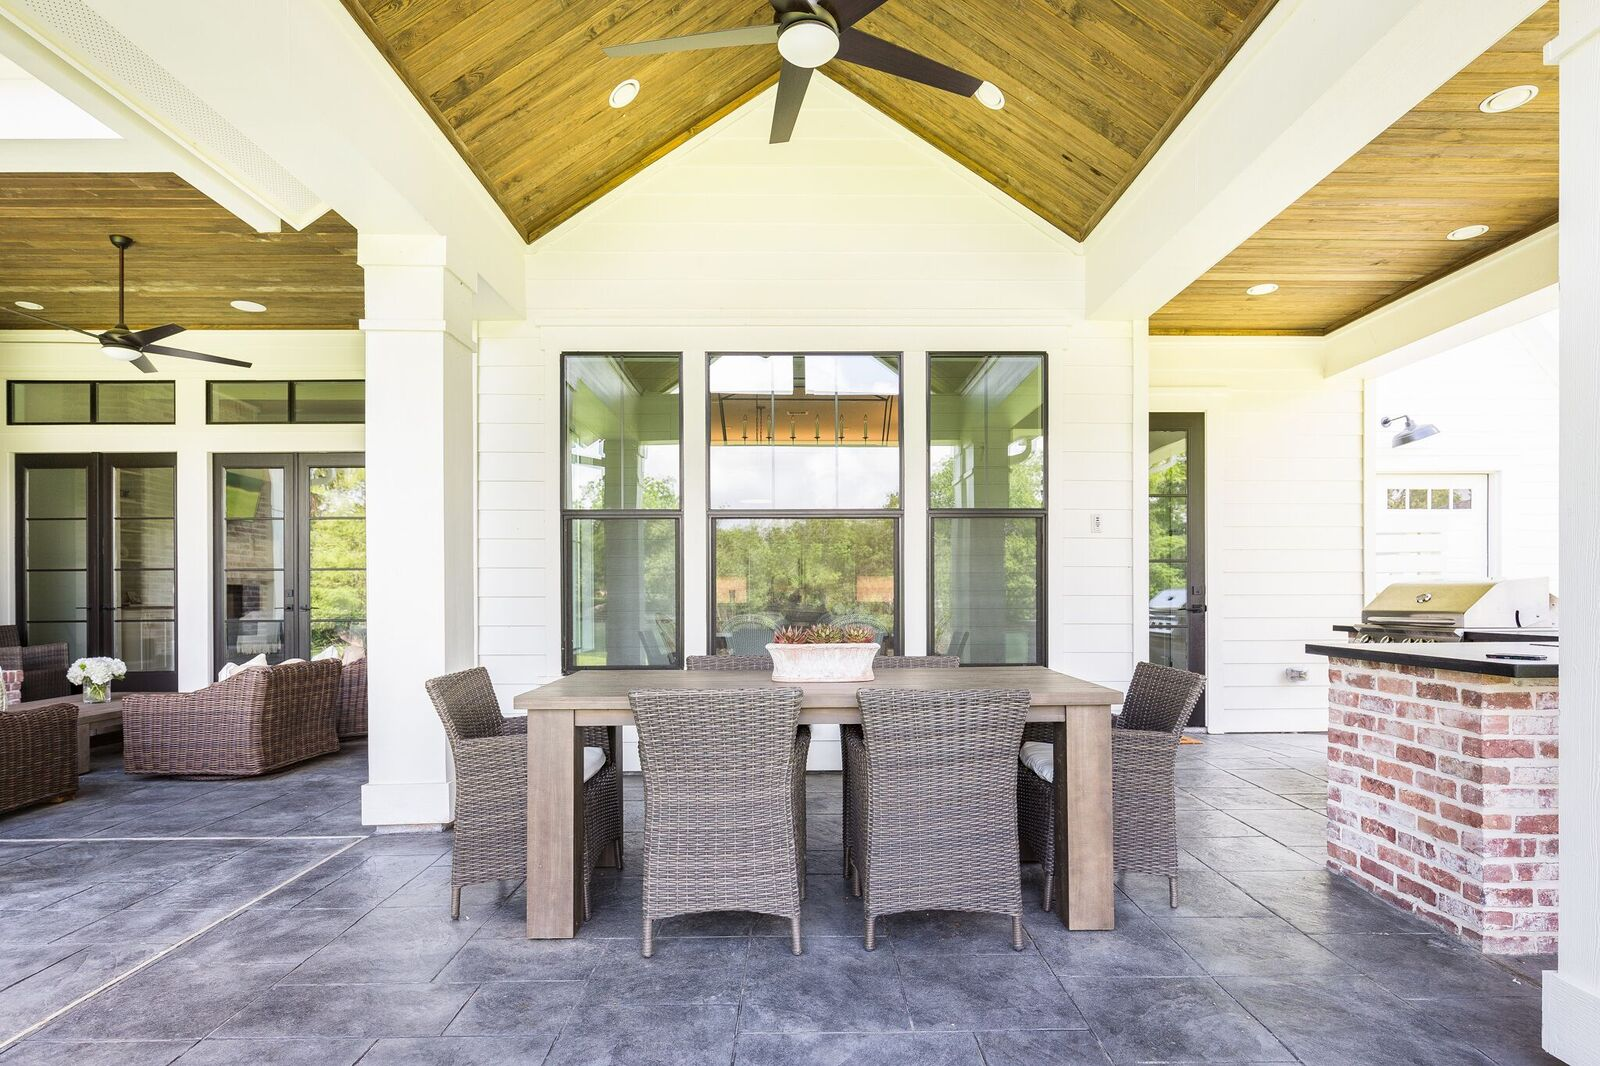 Come see this waterfront modern farmhouse featuring a covered patio over an outdoor dining room.